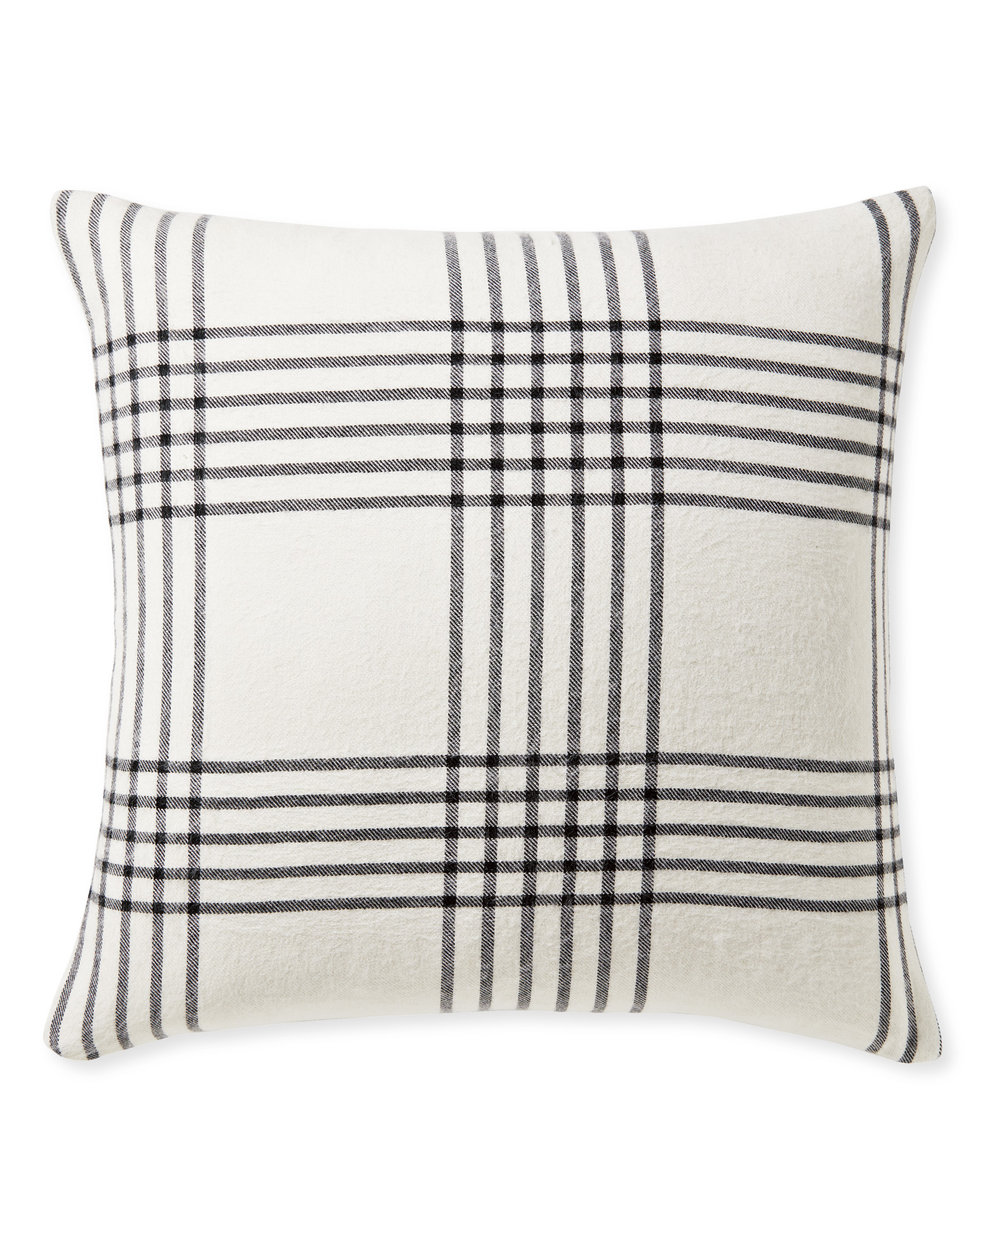 Blakely Pillow